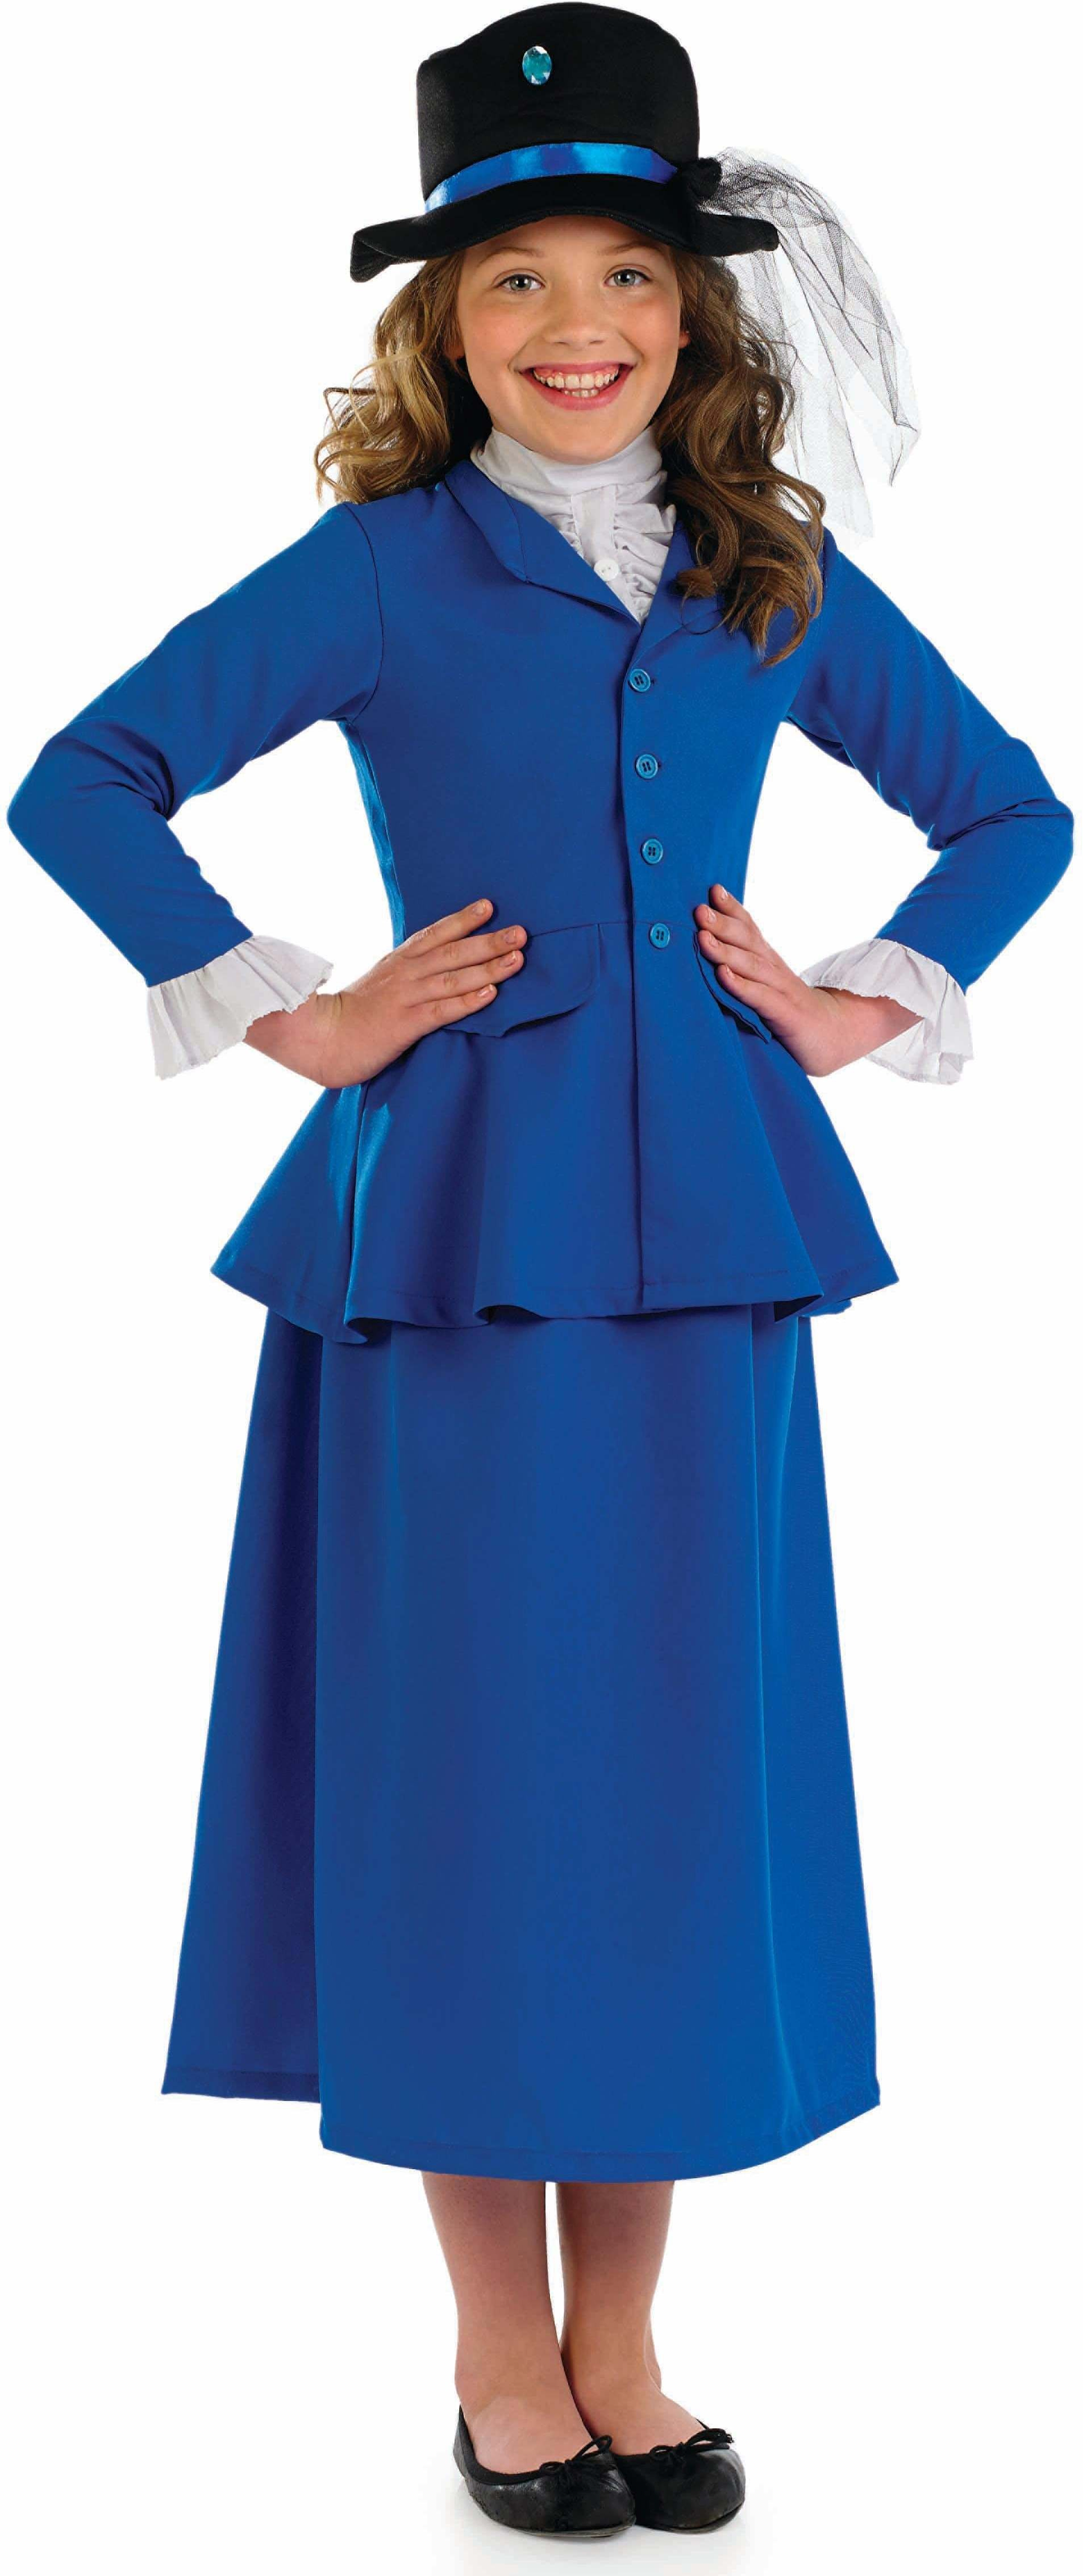 Girls Victorian Dress Victorian Outfit - (Blue, Red)